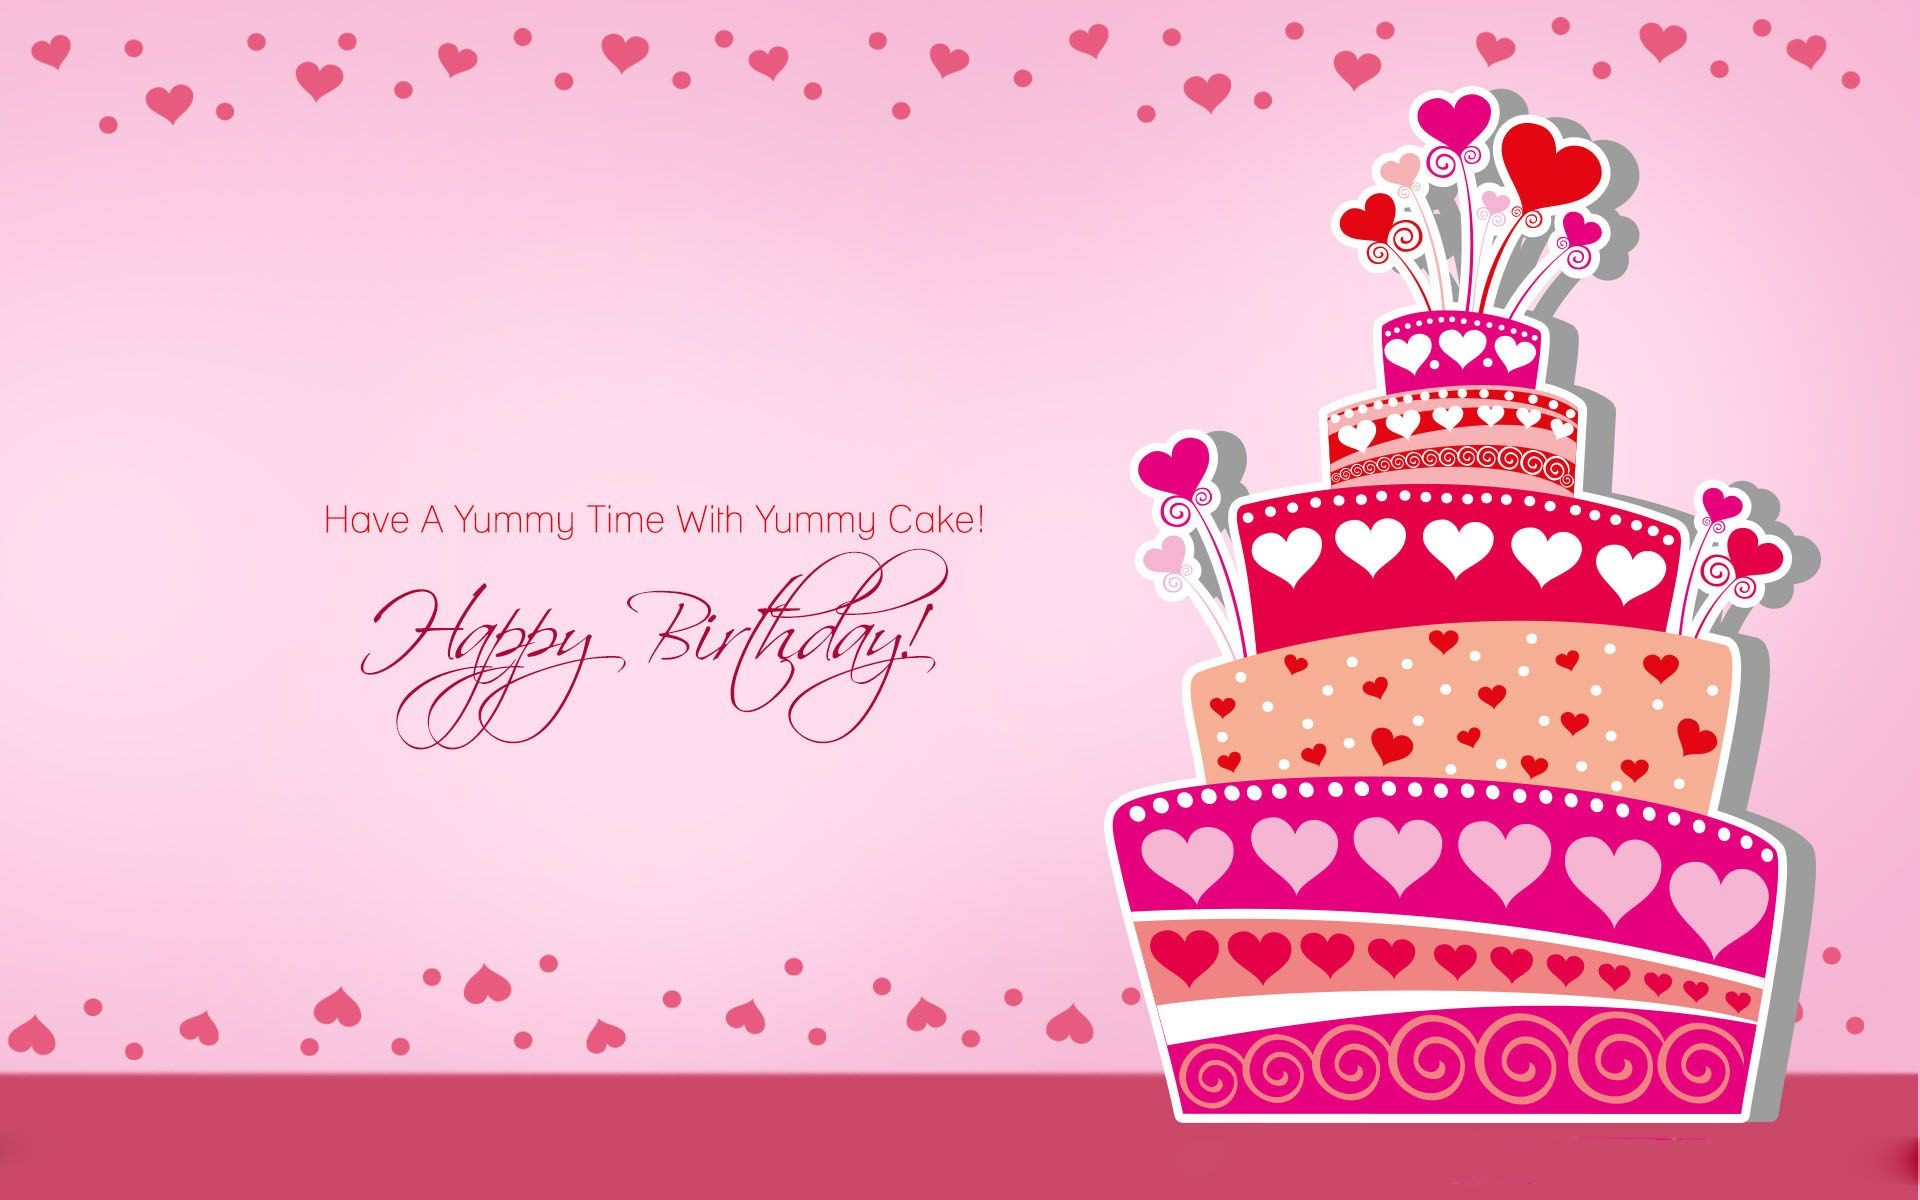 birthday wallpaper hd ; Birthday_HD_Wallpaper